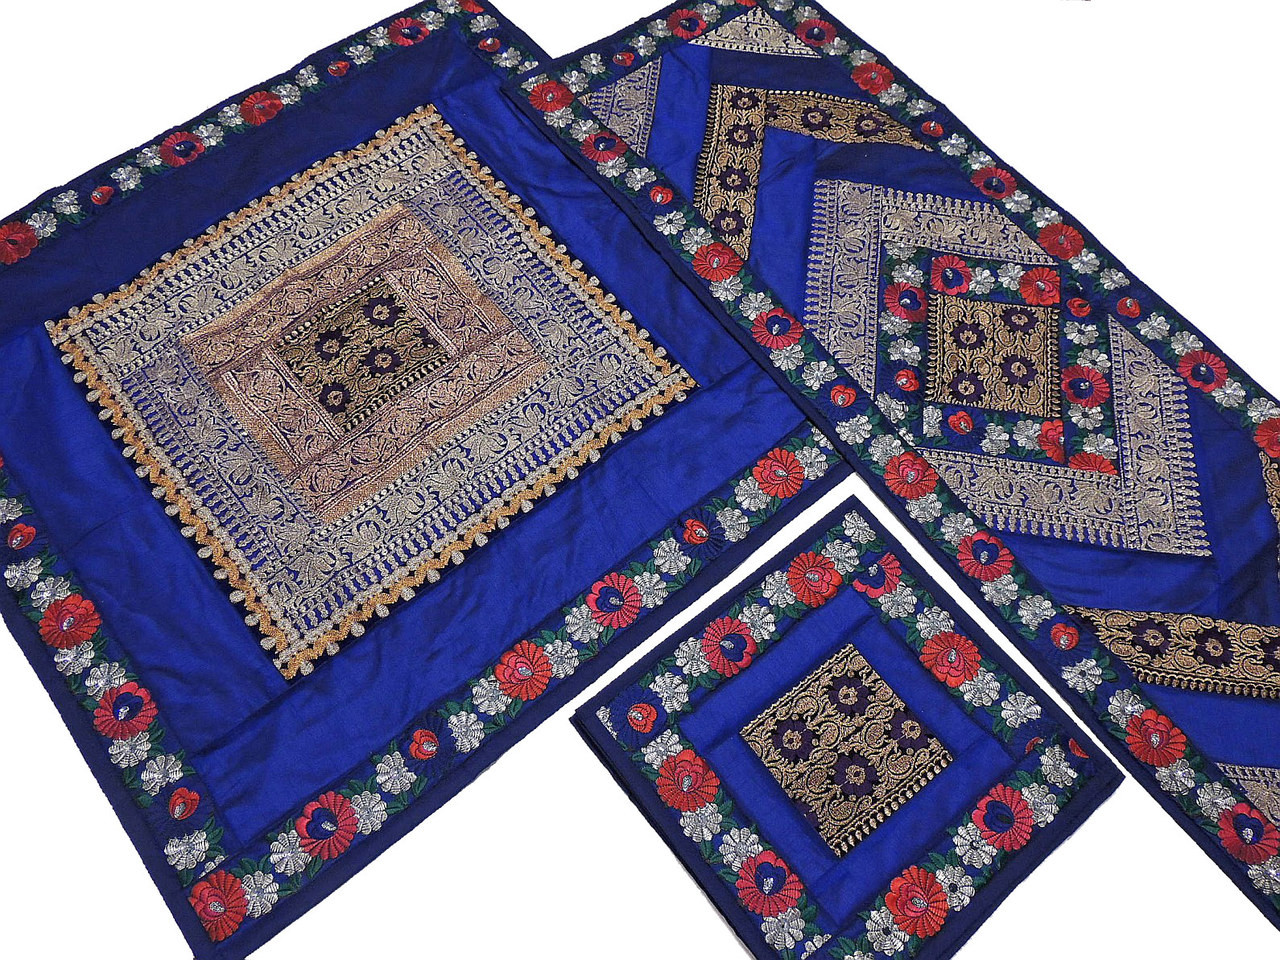 Luxury Table Linens Set   Blue Fine Embroidery Beaded Overlay Runner  Placemats.